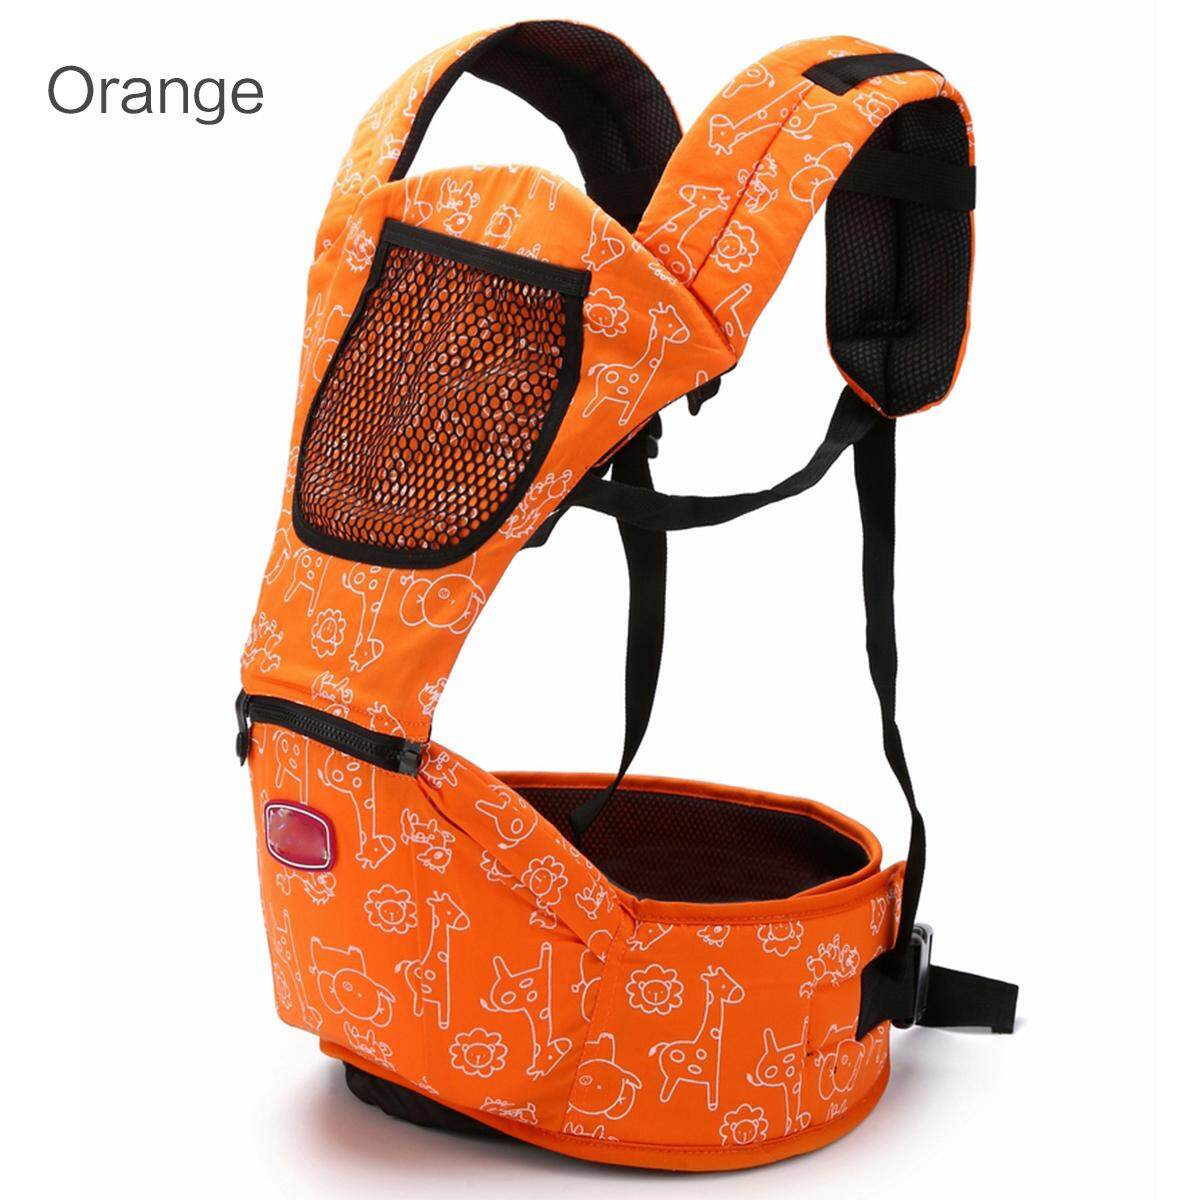 Baby carrier Multifunctional Baby Hip Seat Carrier Breathable Adjustable Carrier